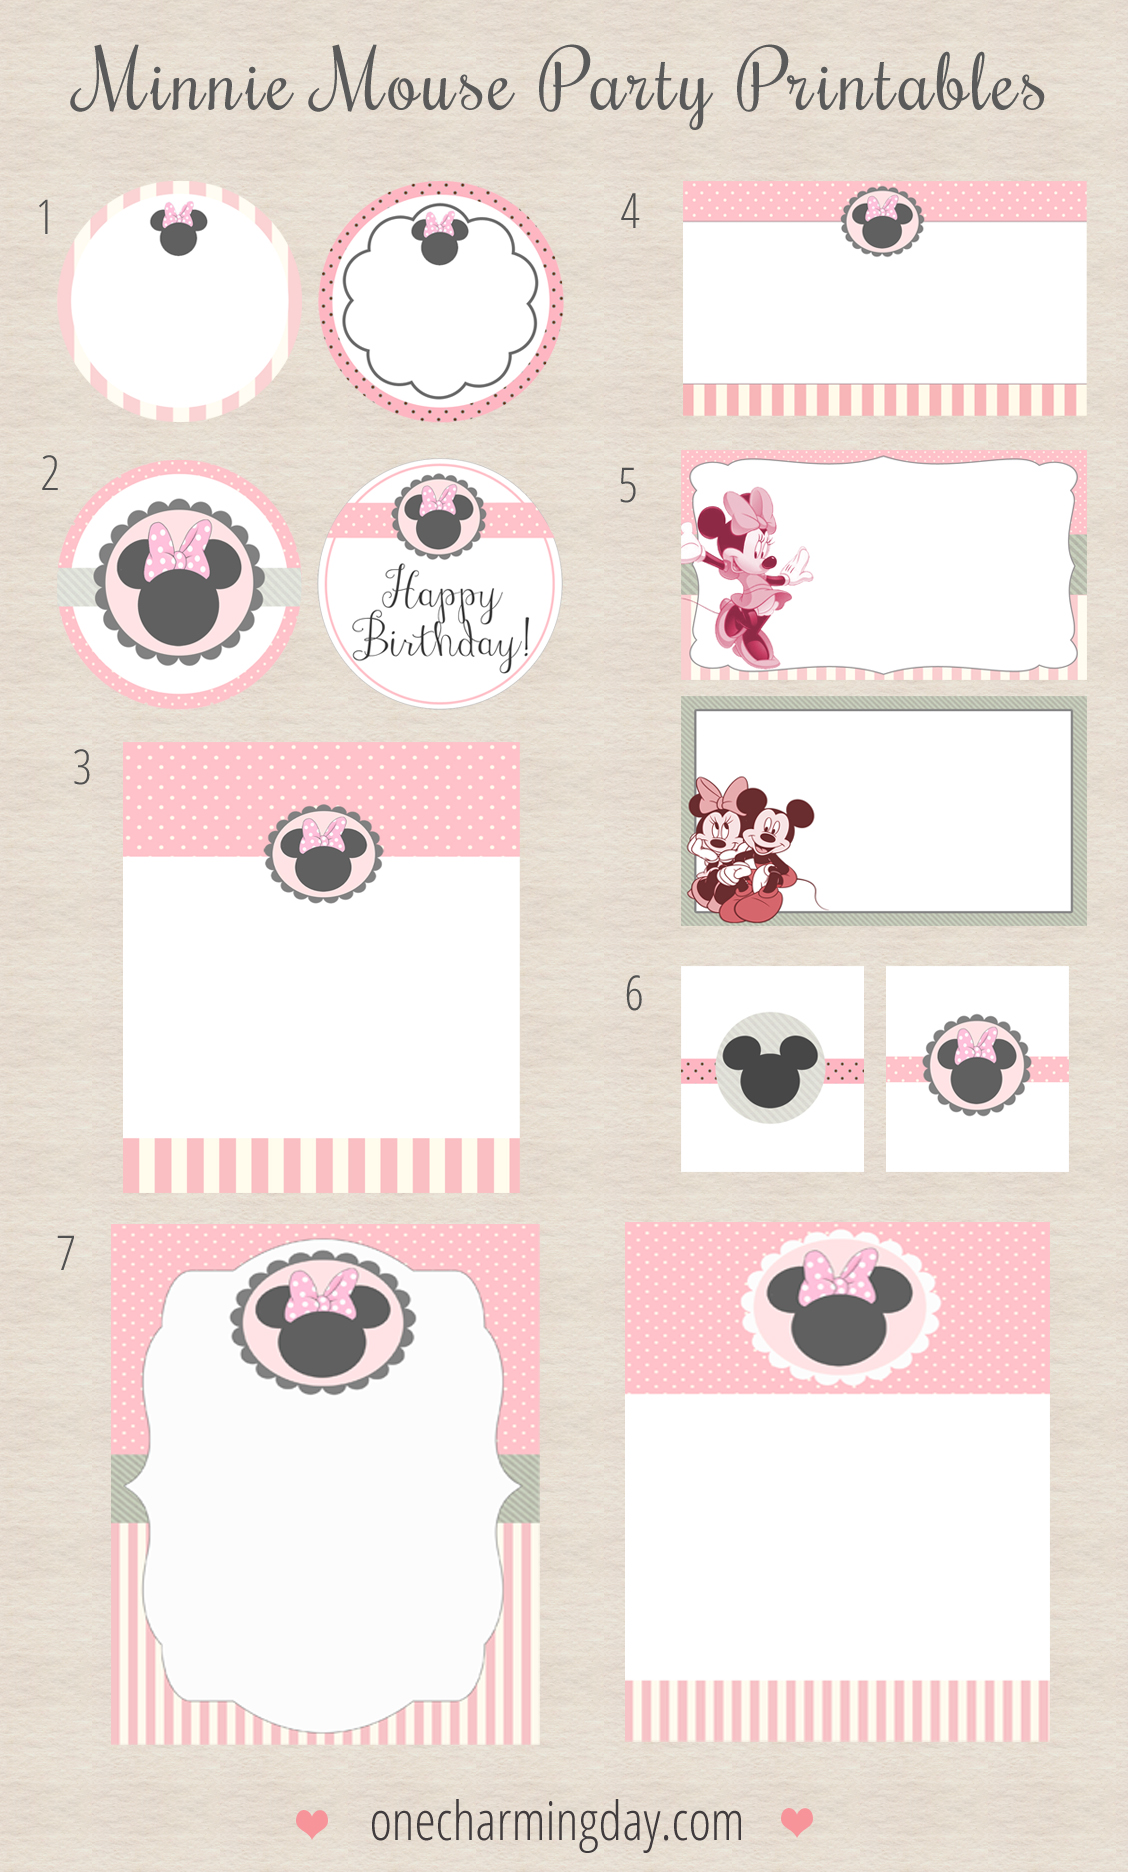 It is an image of Lucrative Free Minnie Mouse Party Printables